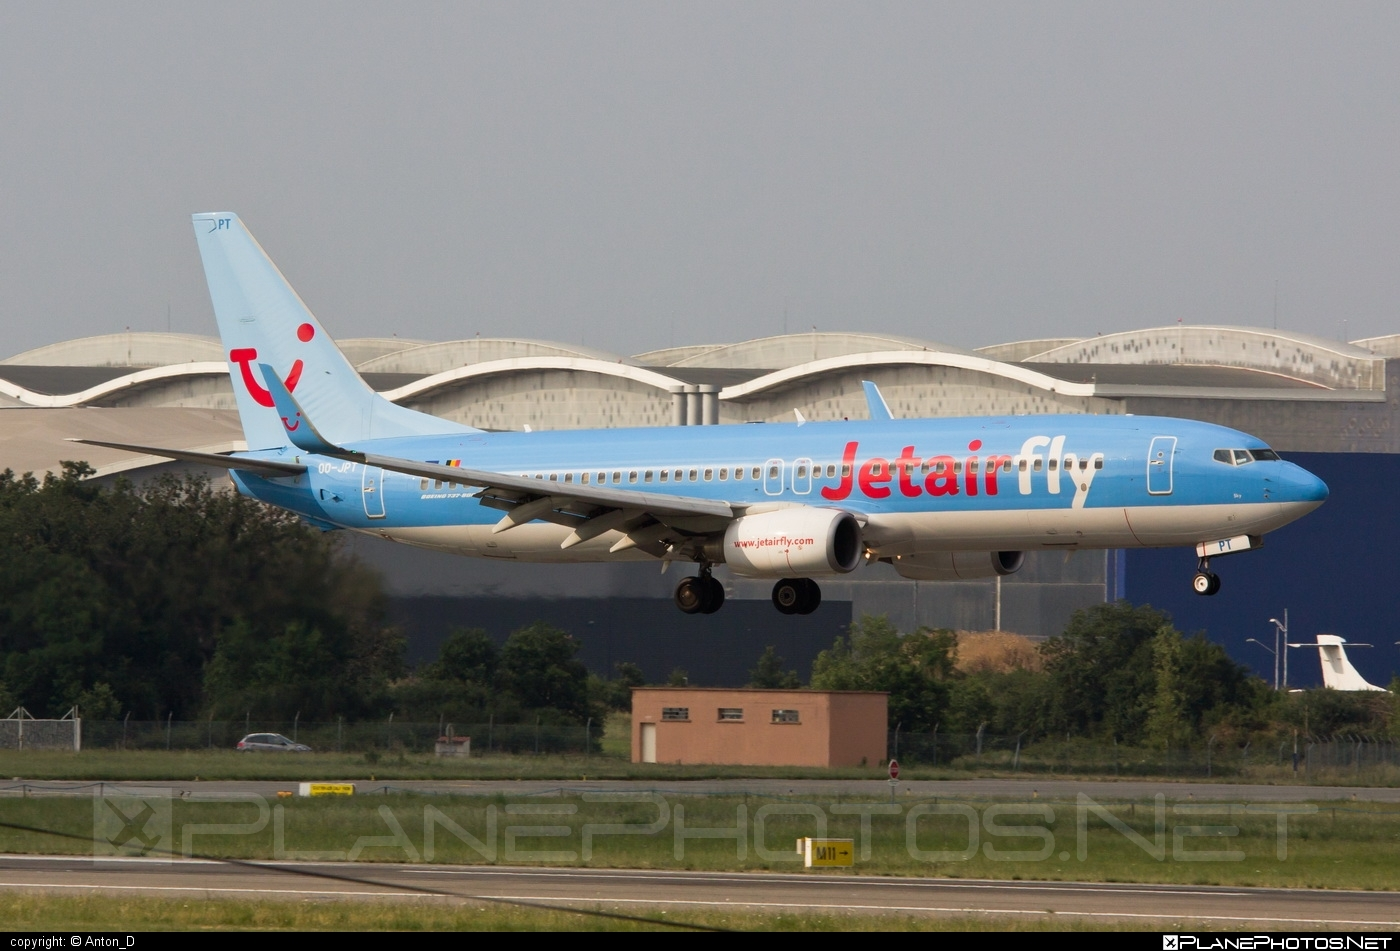 Boeing 737-800 - OO-JPT operated by Jetairfly #b737 #b737nextgen #b737ng #boeing #boeing737 #jetairfly